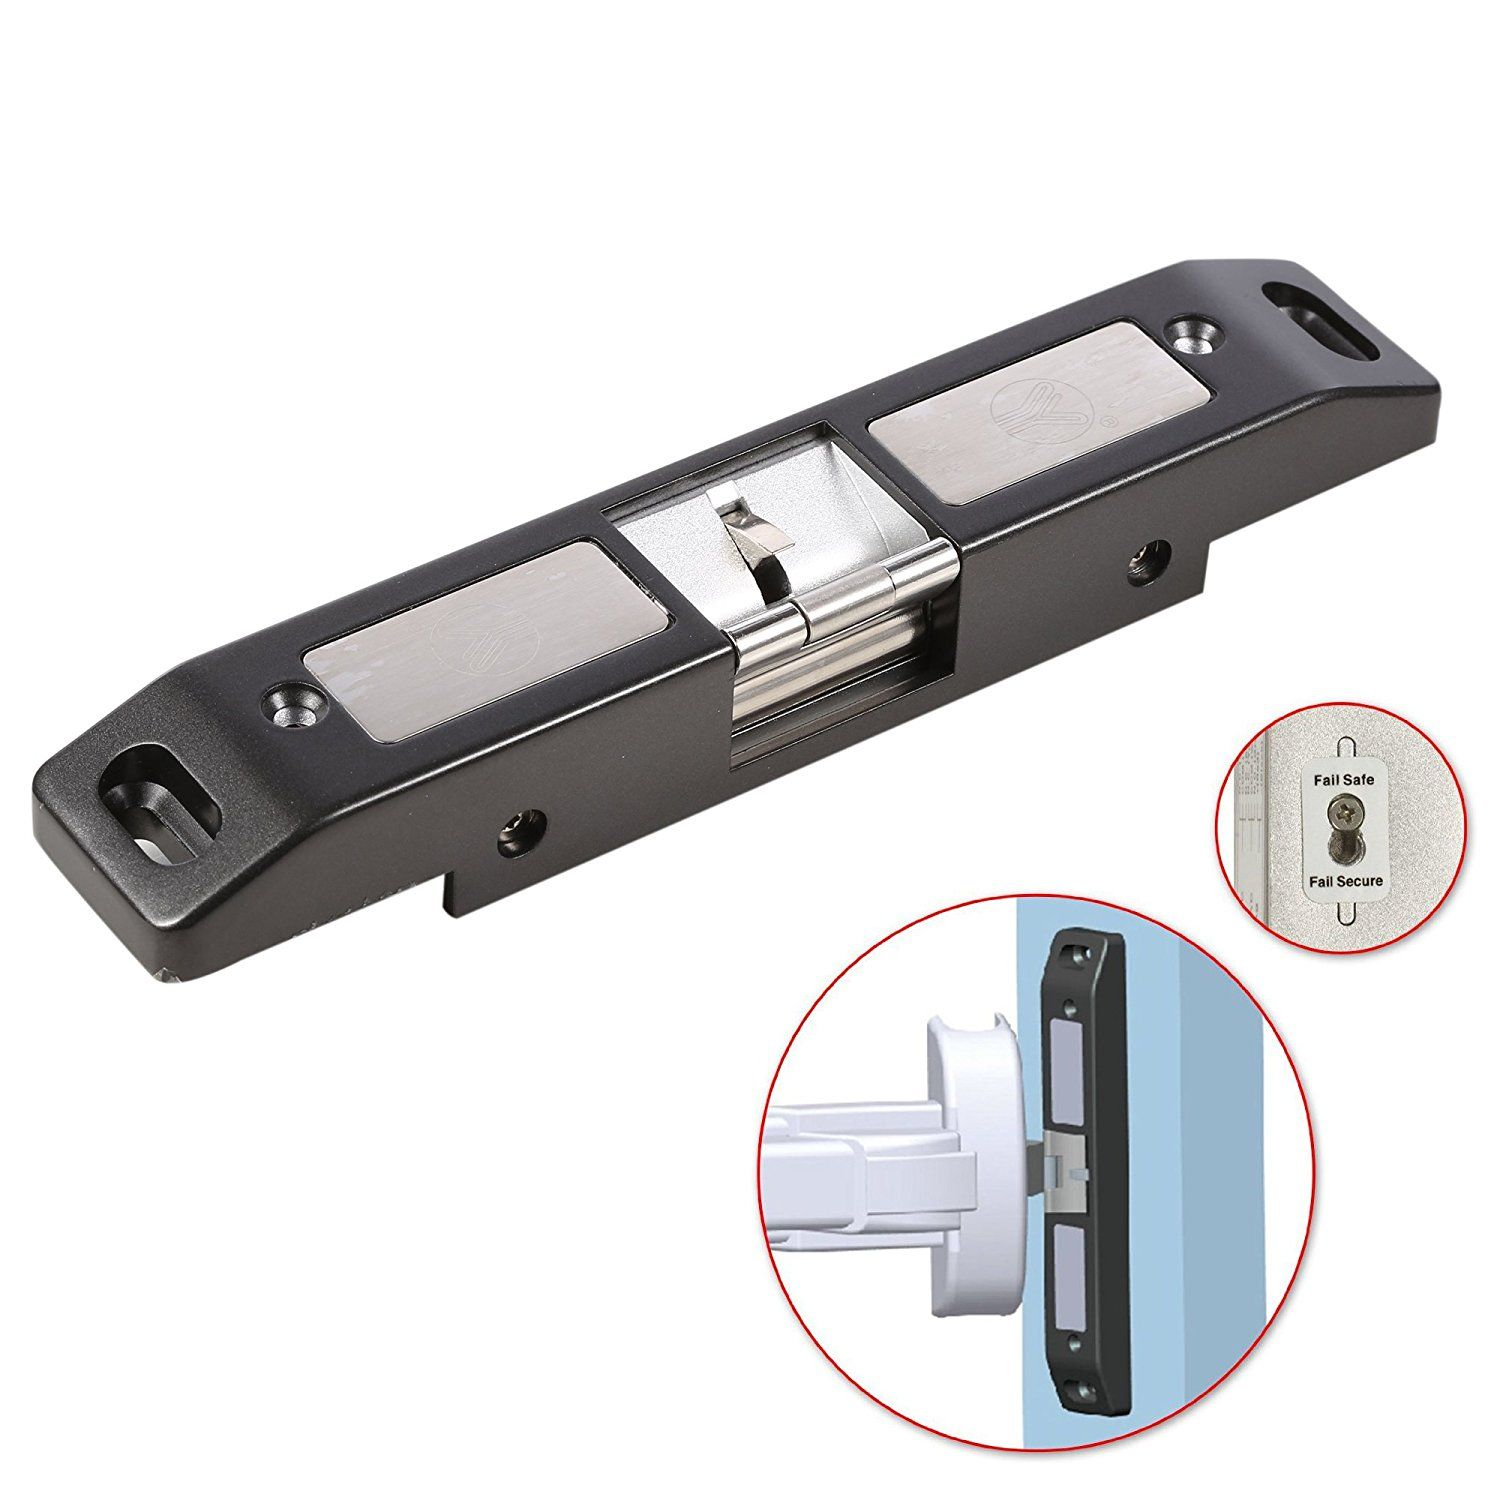 OBO HANDS Electric Strike Lock For Push Panic Bar Exit Device Emergency Door Fail safe/Fail Secure Mode Exchangeable Lock